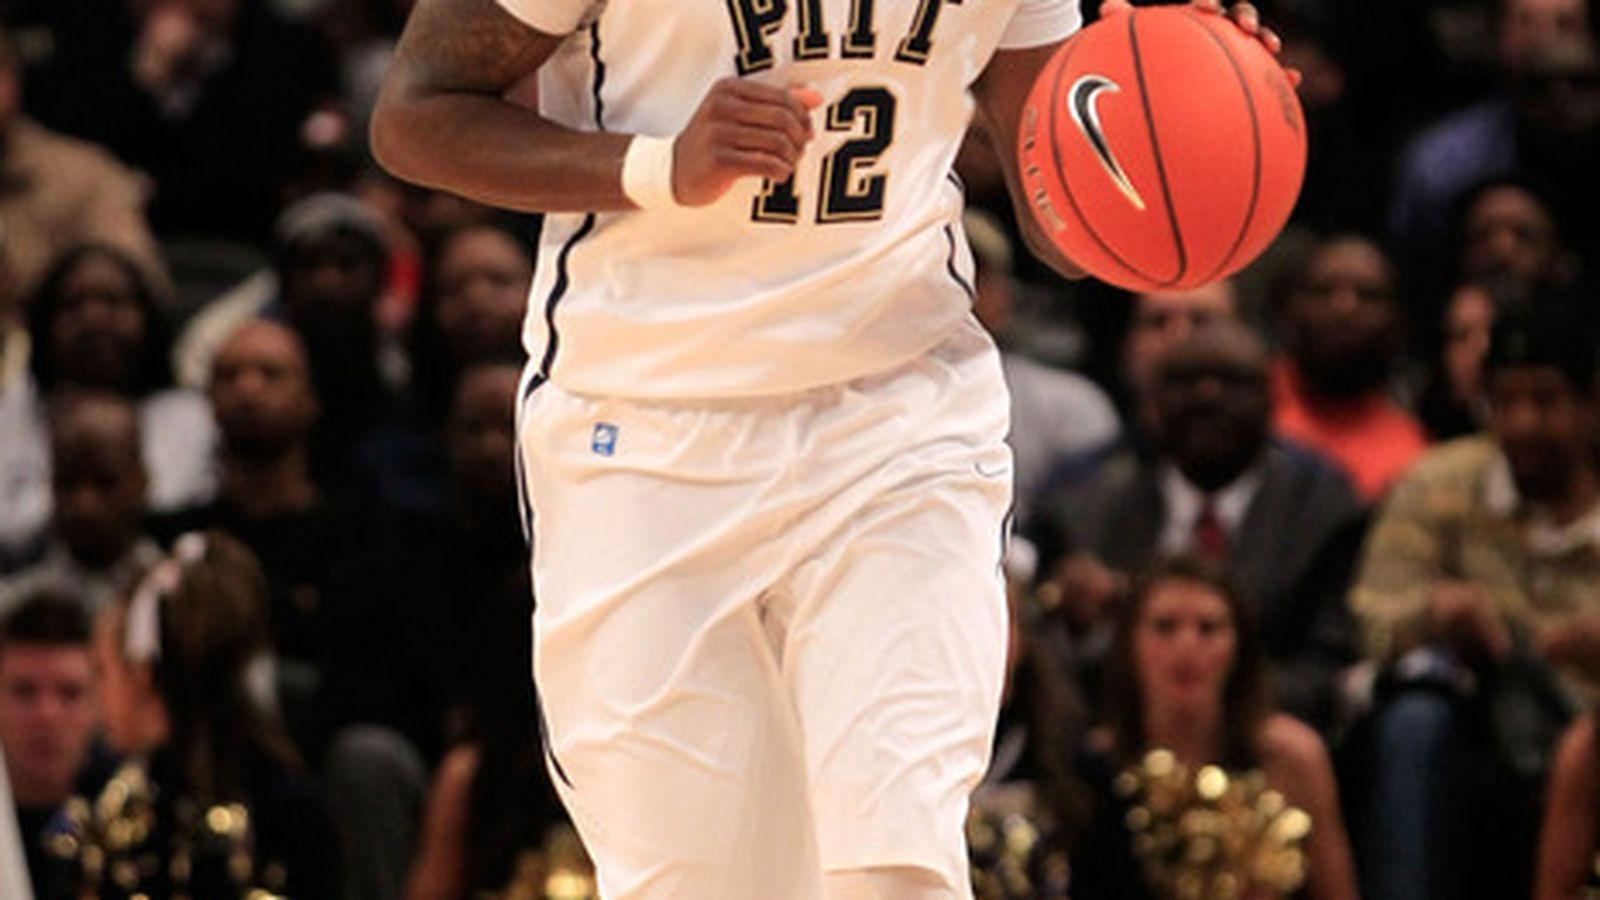 Pitt Basketball: Ashto... Brad Pitt Basketball